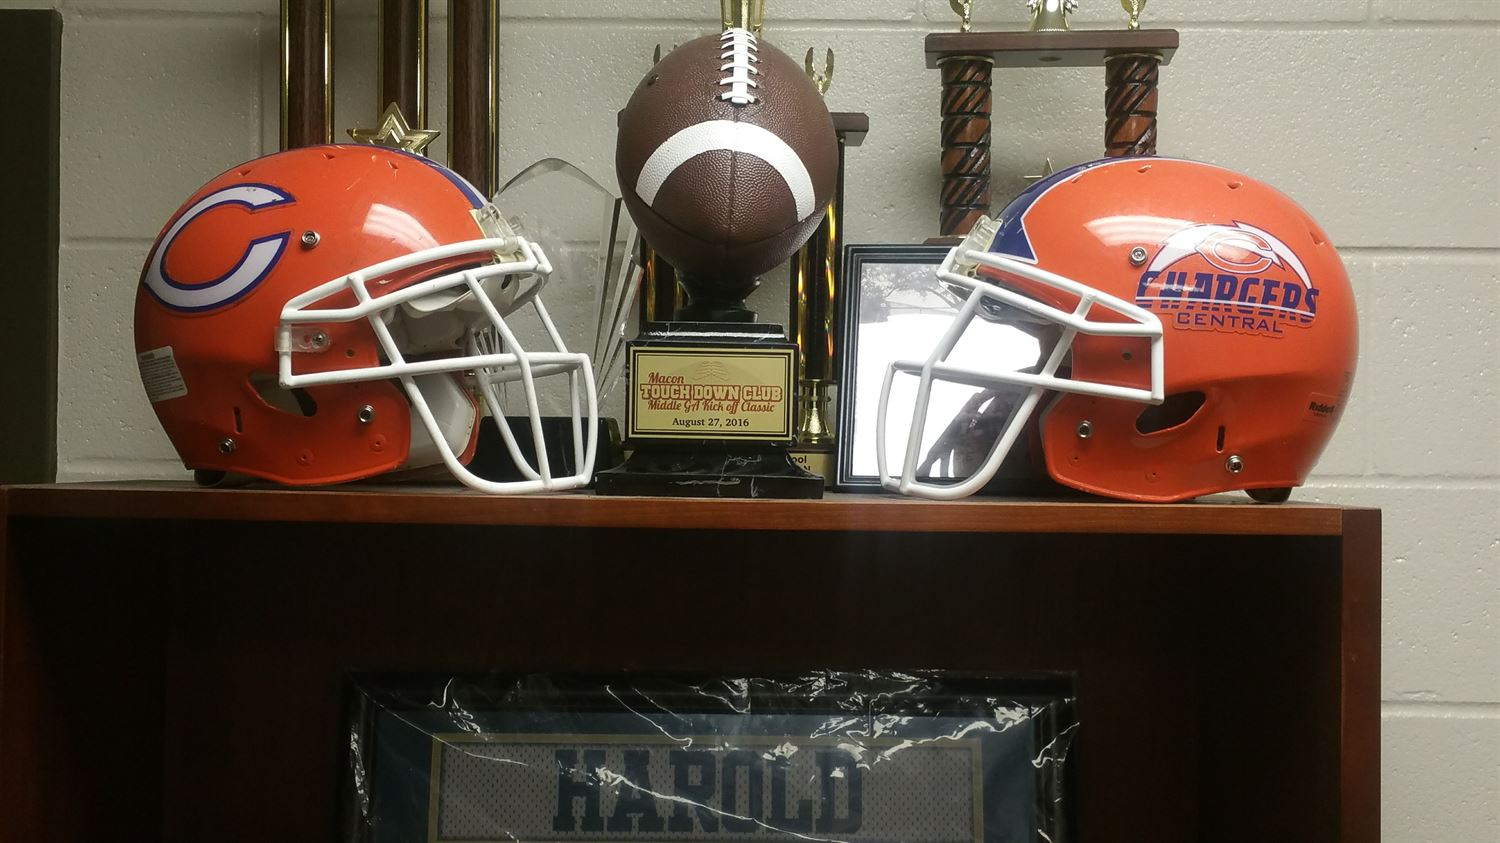 Central High School - Charger Football